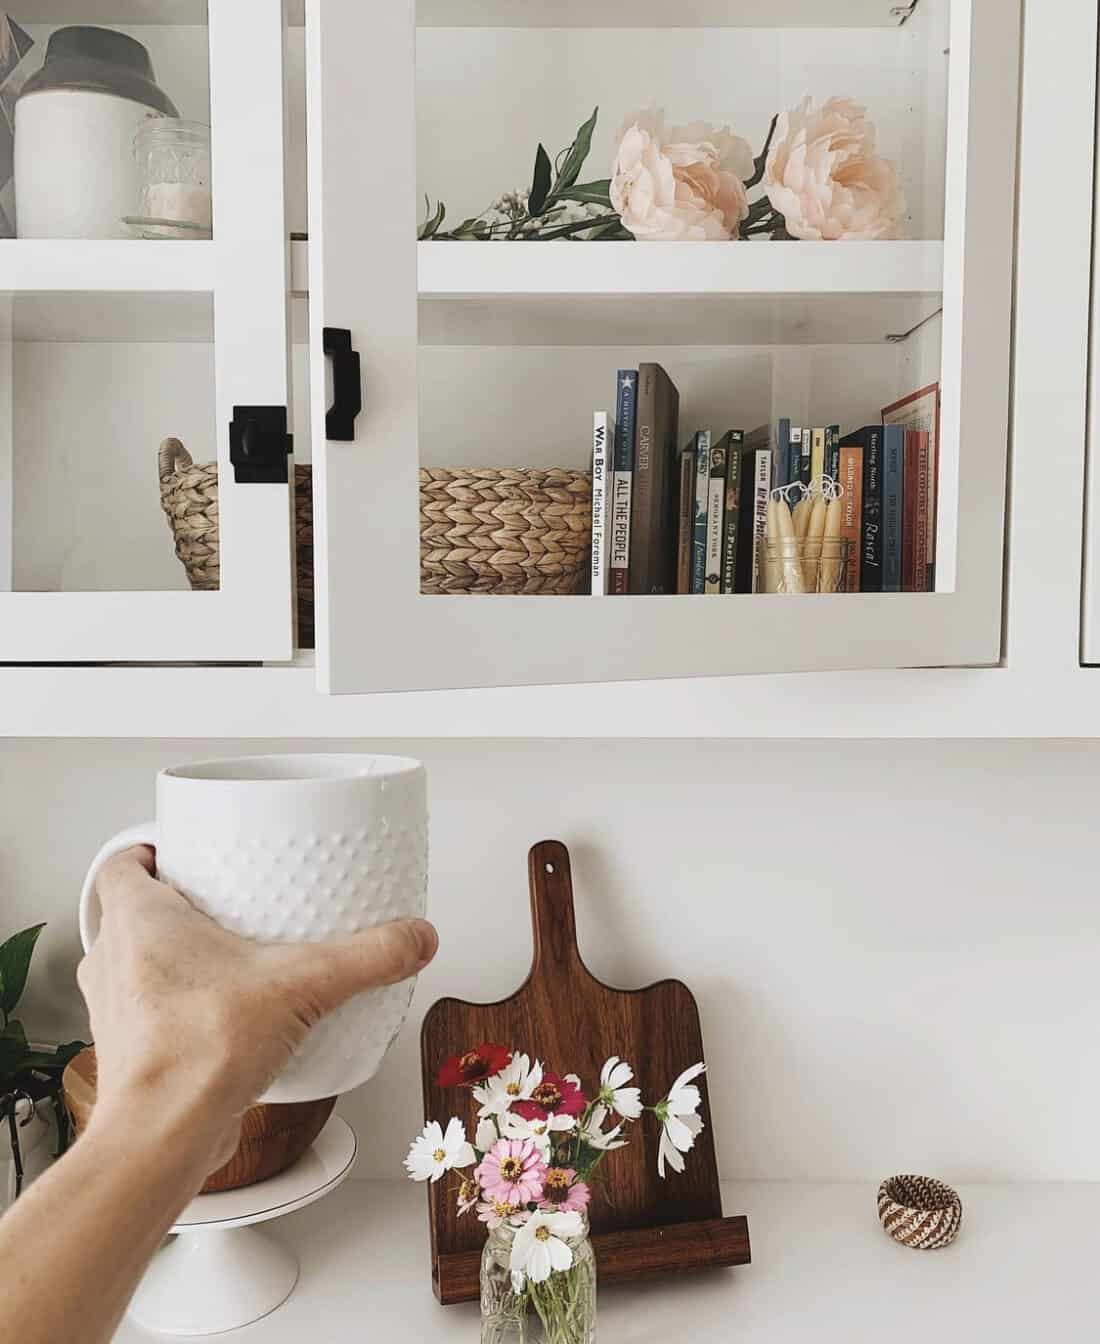 coffee cup in front of built in cabinets